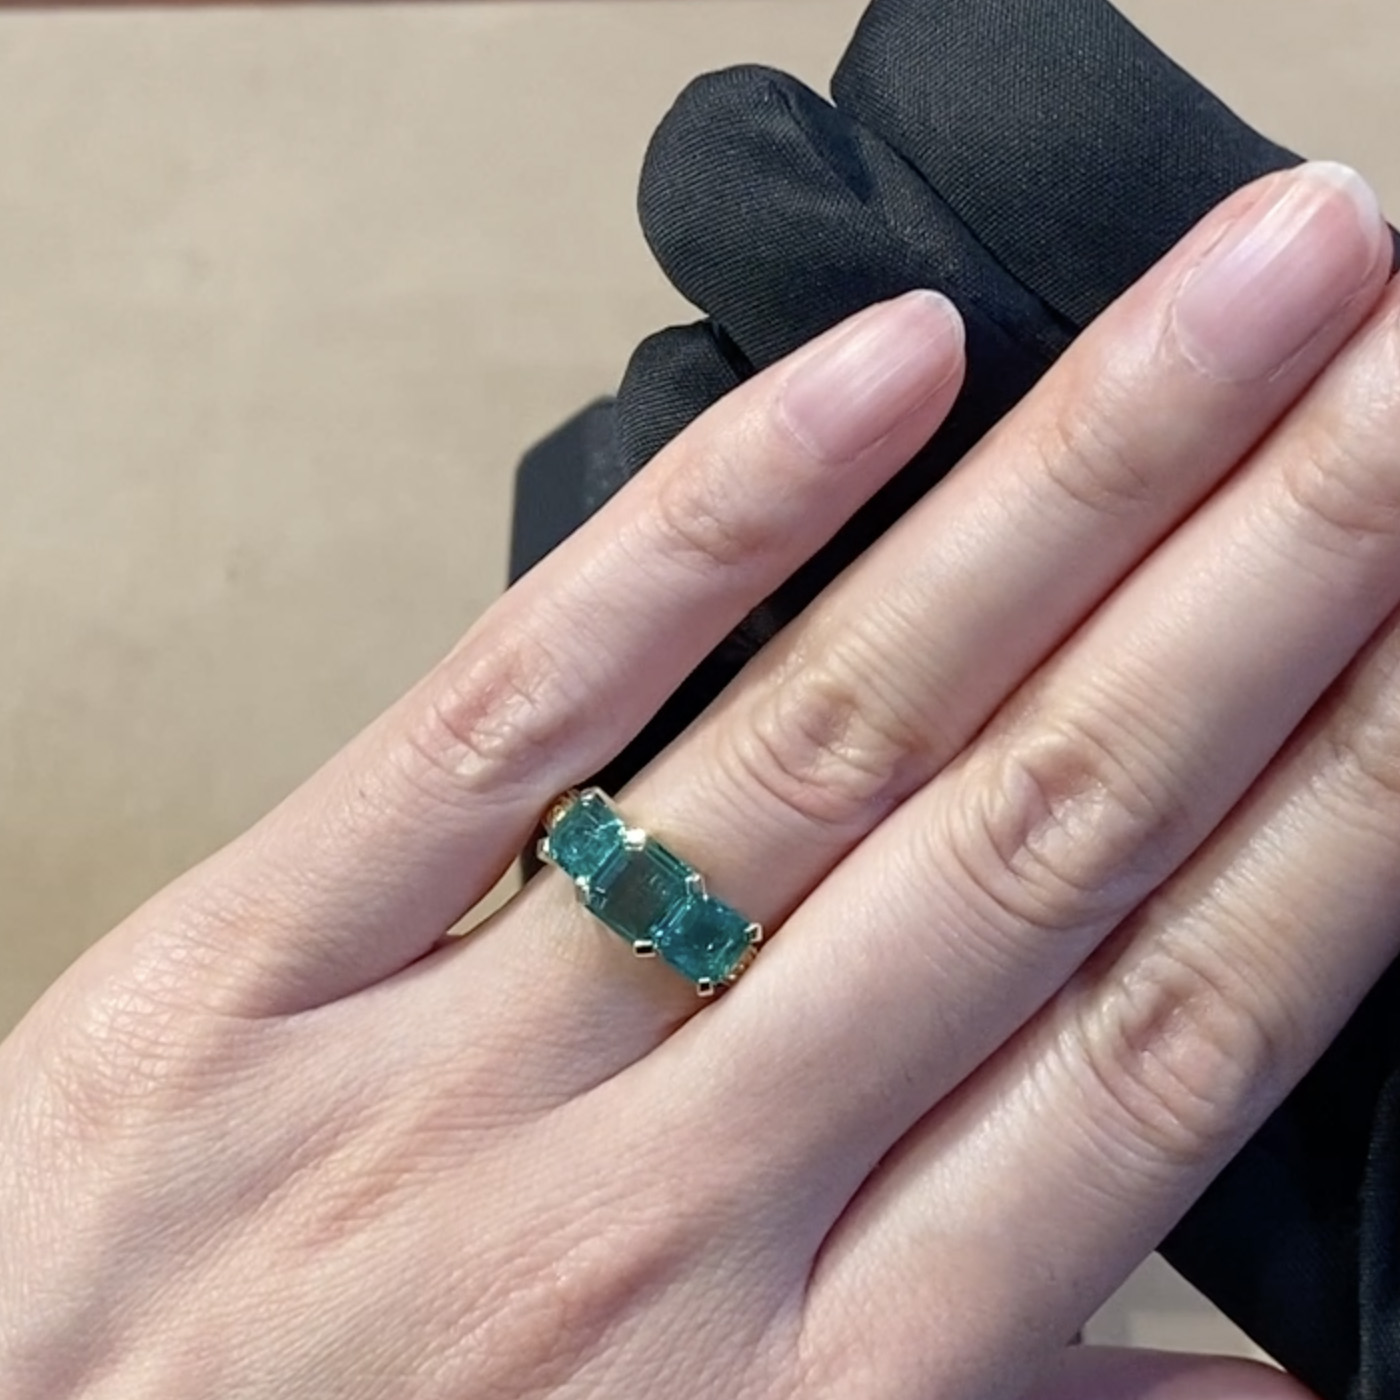 Three Stone Rectangular Cut Emerald Ring 2.03ct <br />  in Yellow Gold, with Carved Leaf Design Shank